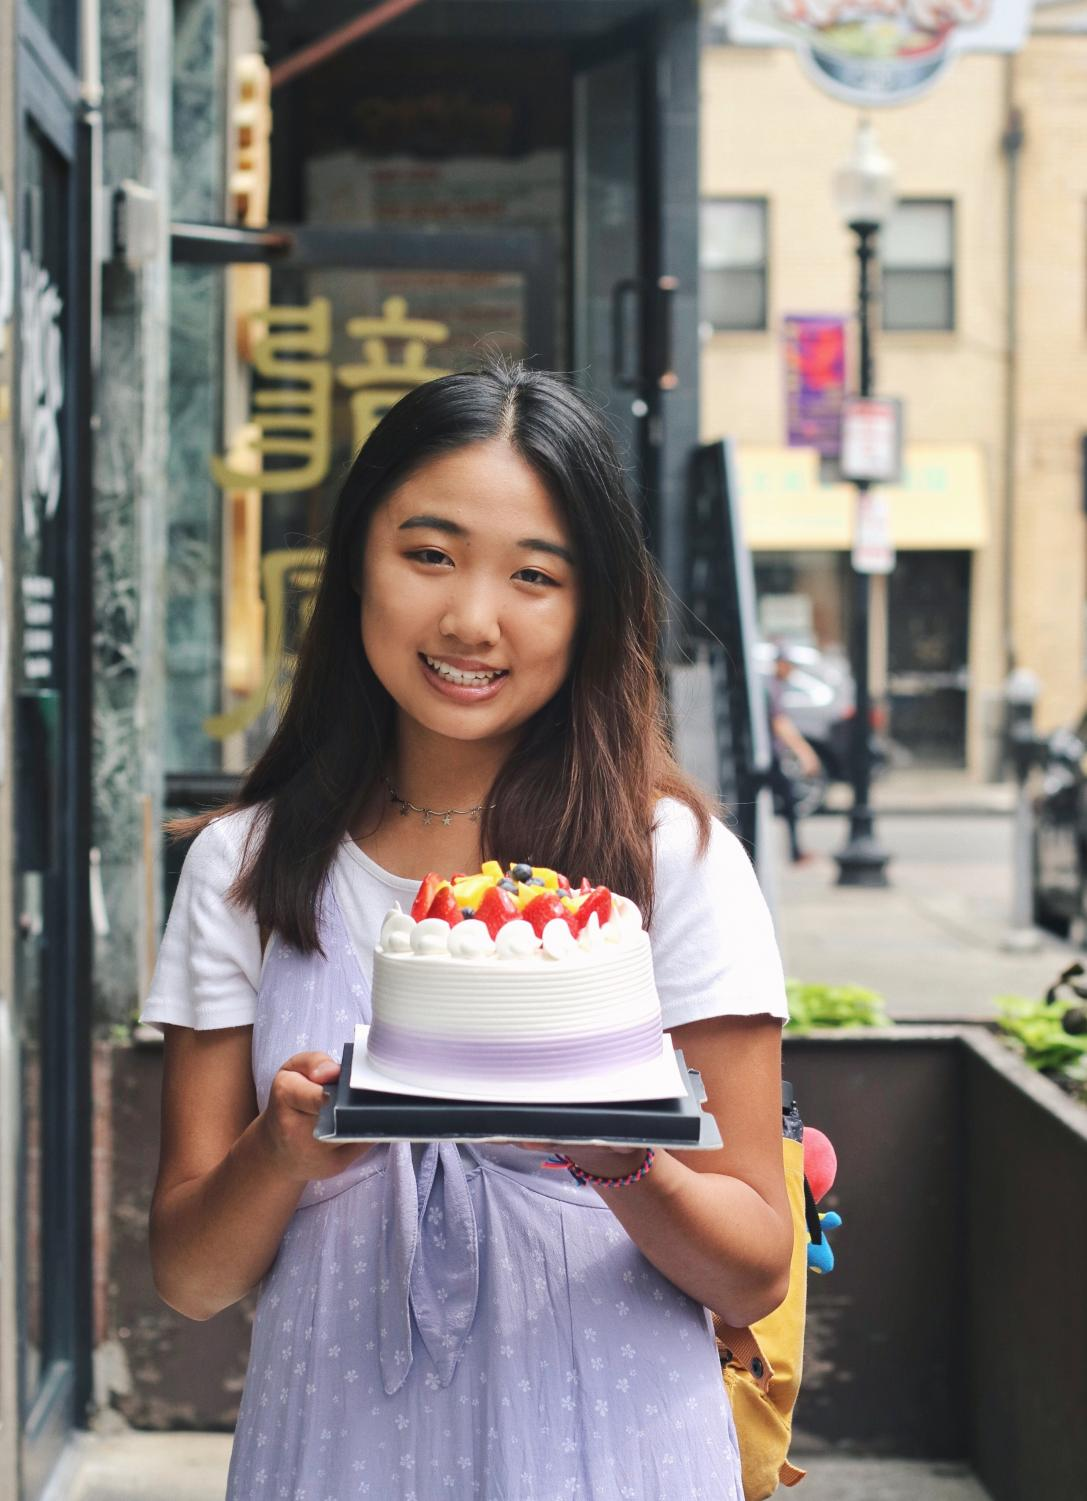 Sophomore Brianna Tang started the Instagram account @toomanybites in 2018.  Since starting the account she has accumulated over 3,000 followers and invites to many local restaurants and other food events.